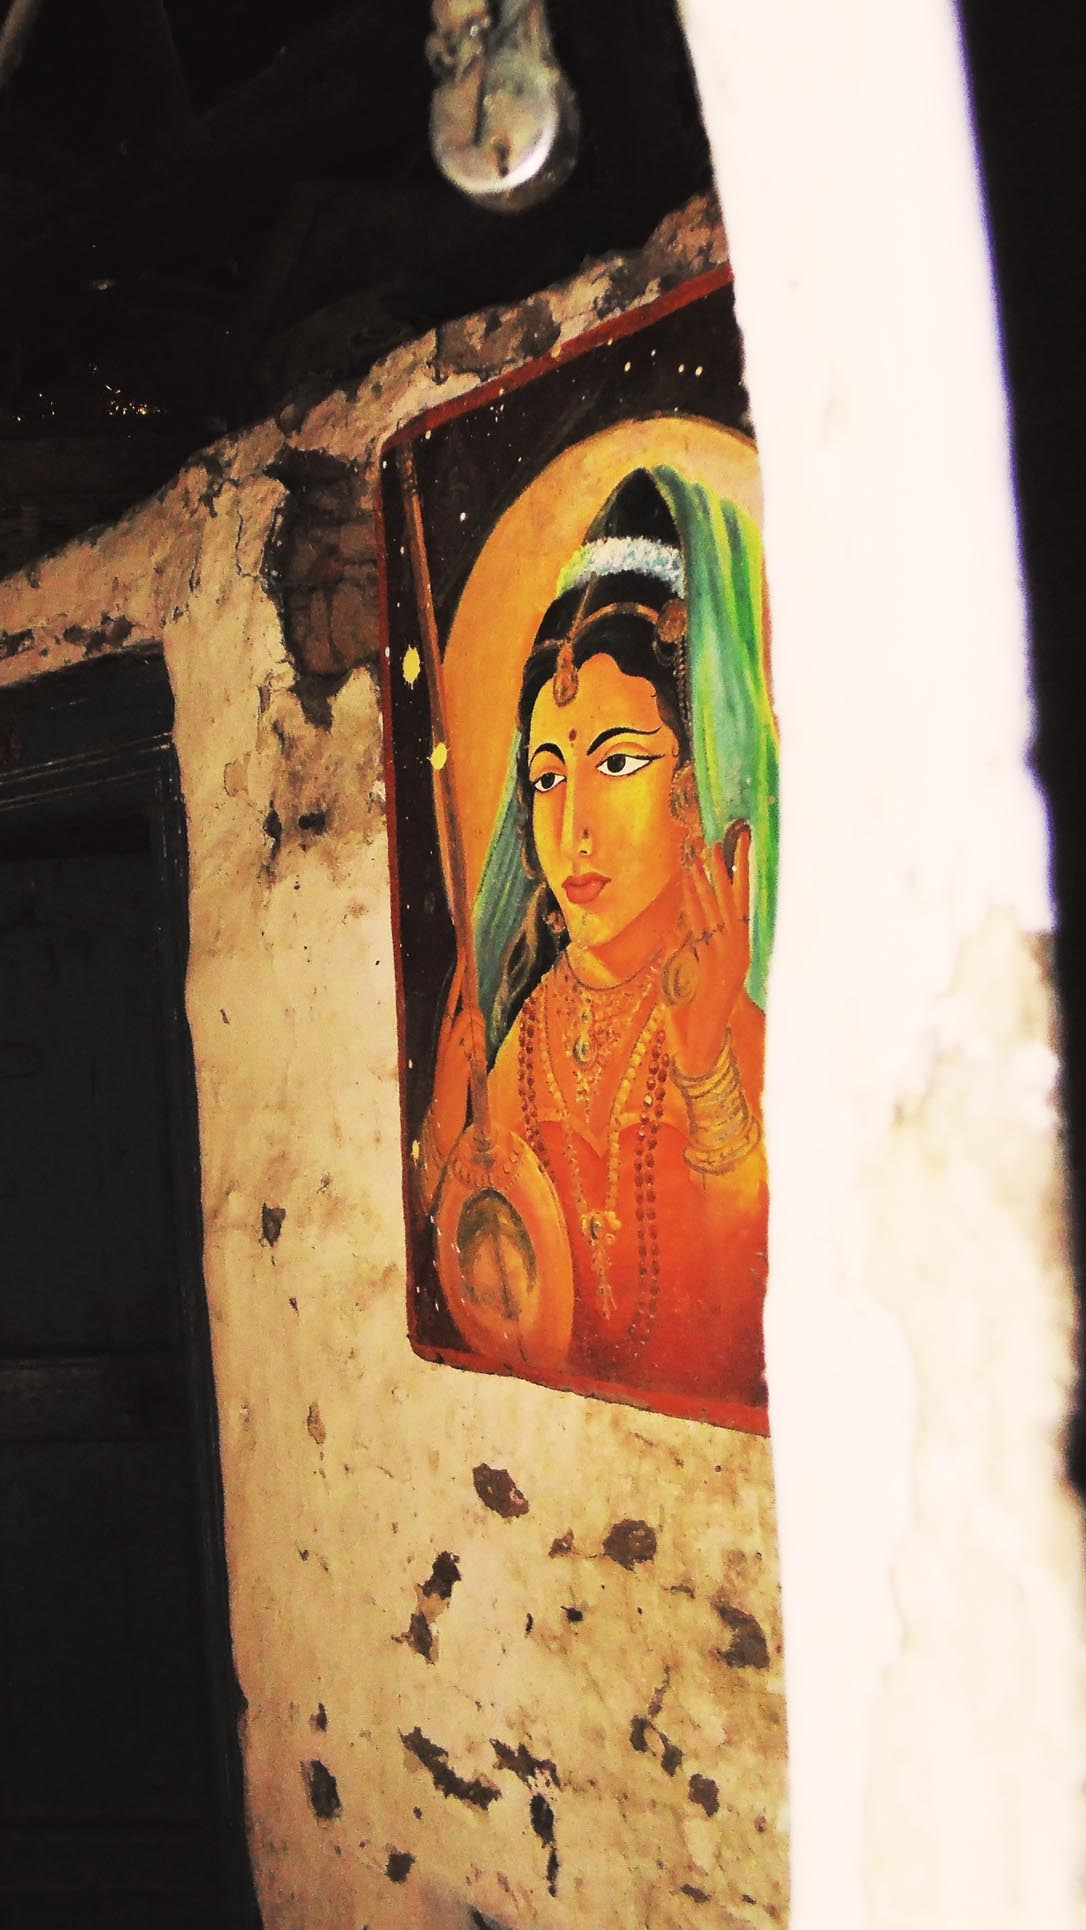 Travelling to a village, i met a person who has a old house., as i entered in it i found this painting which was painted in 2000 by his son...